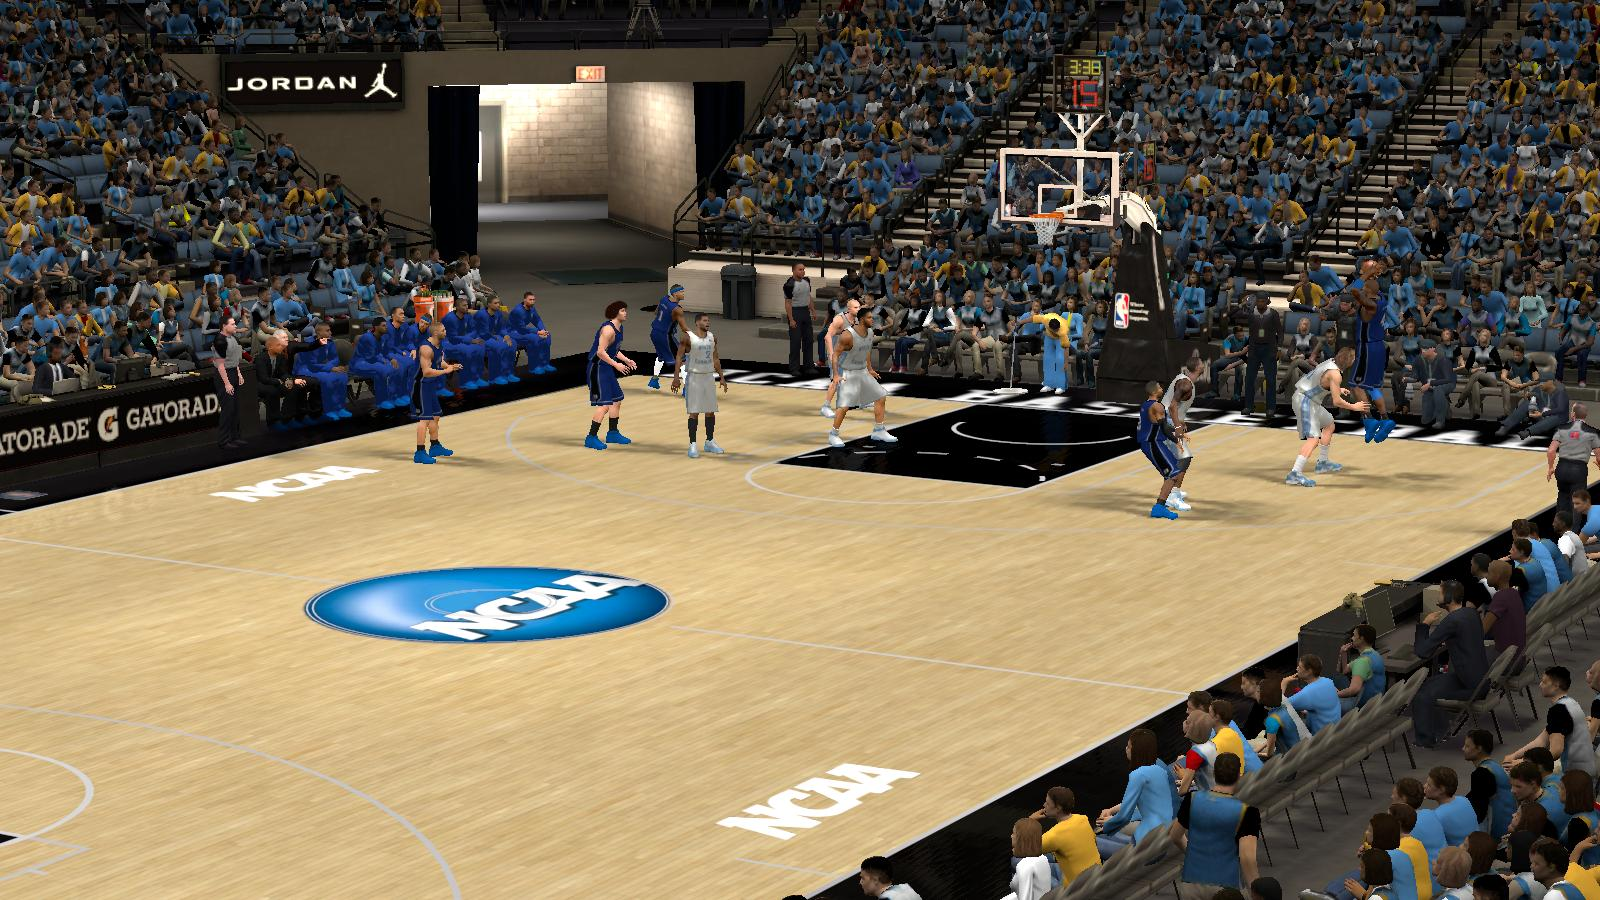 Nba own thread about ncaa basketball stick. Using hex pad pro editor best